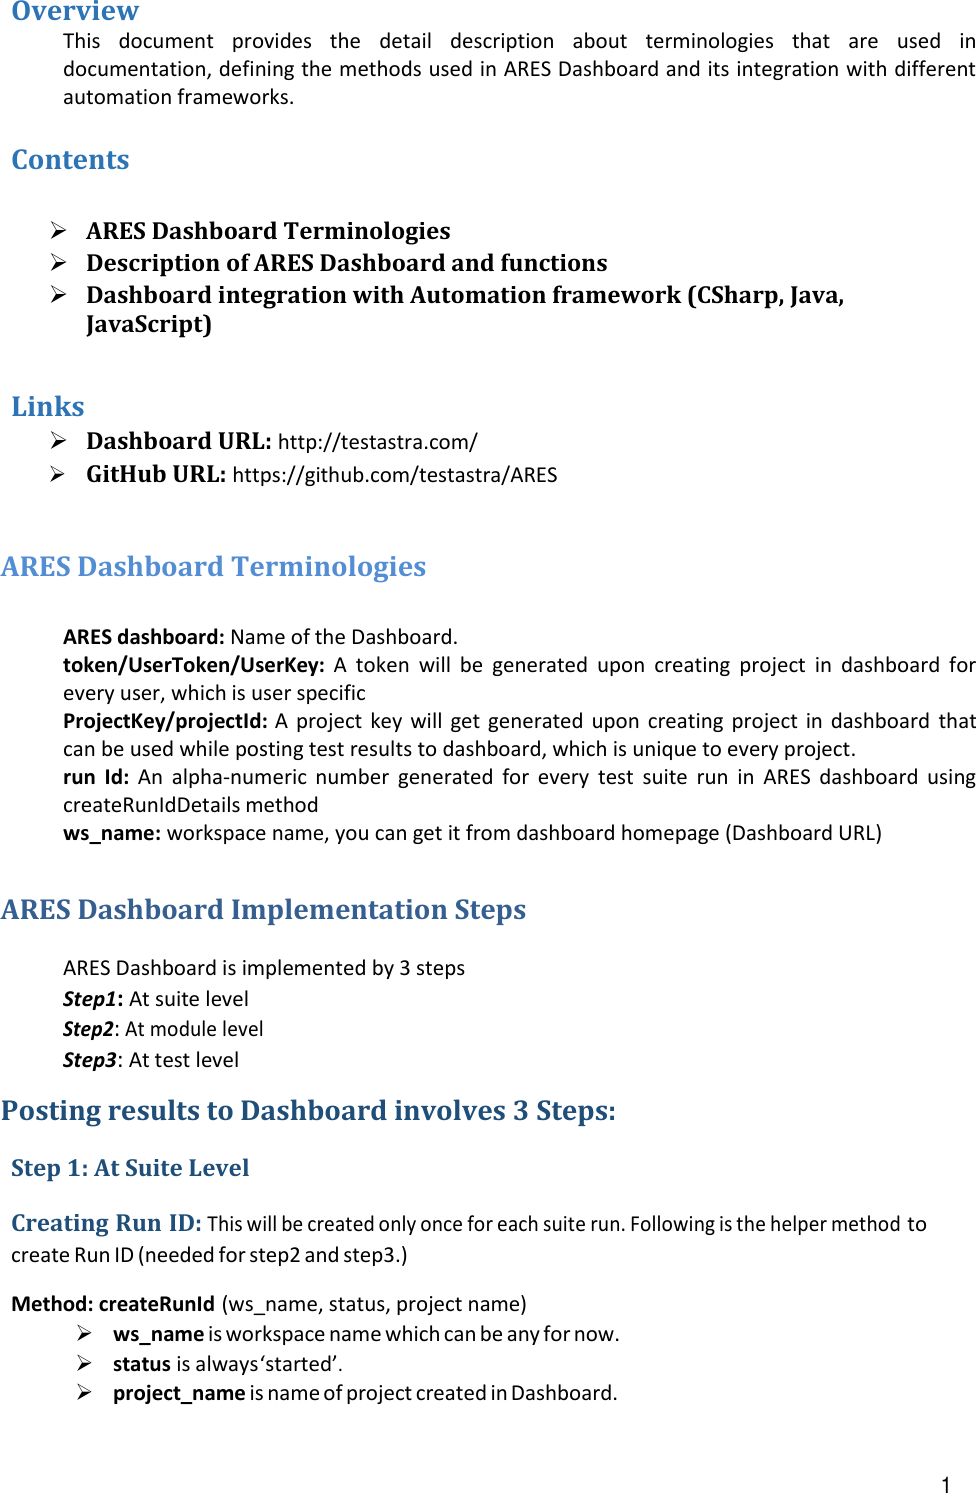 ARES Dashboard User Guide